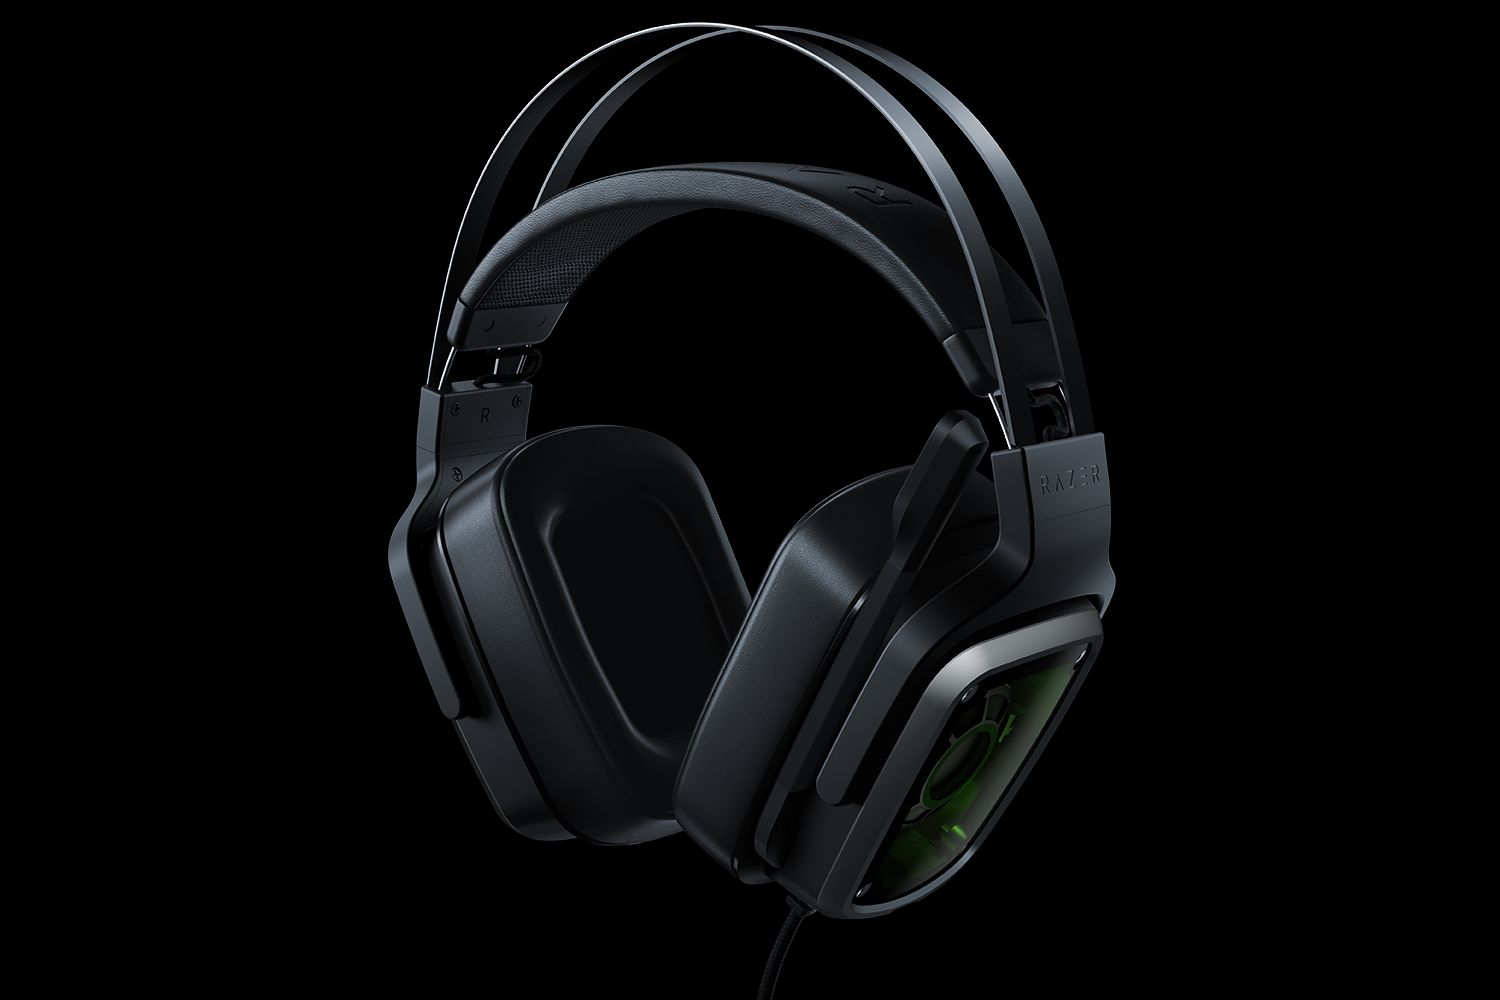 Razer introduces two new analog gaming headsets